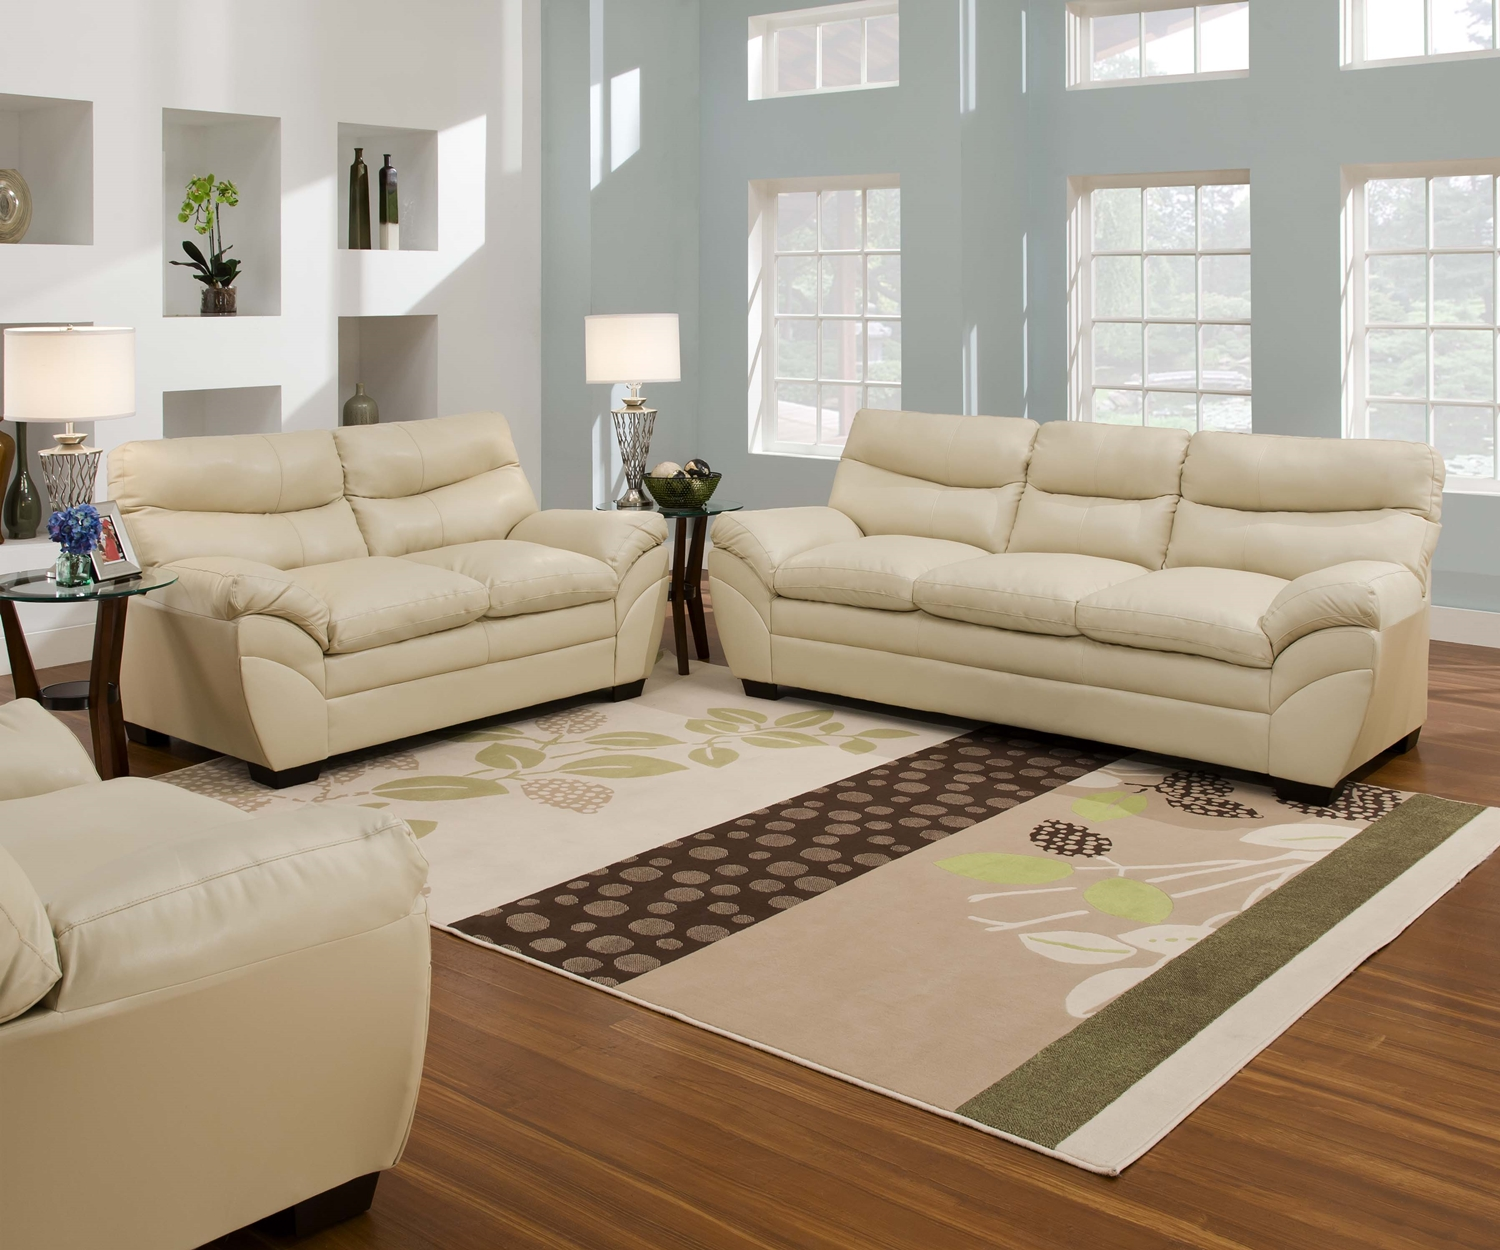 Cream living room furniture modern house for Living room farnichar